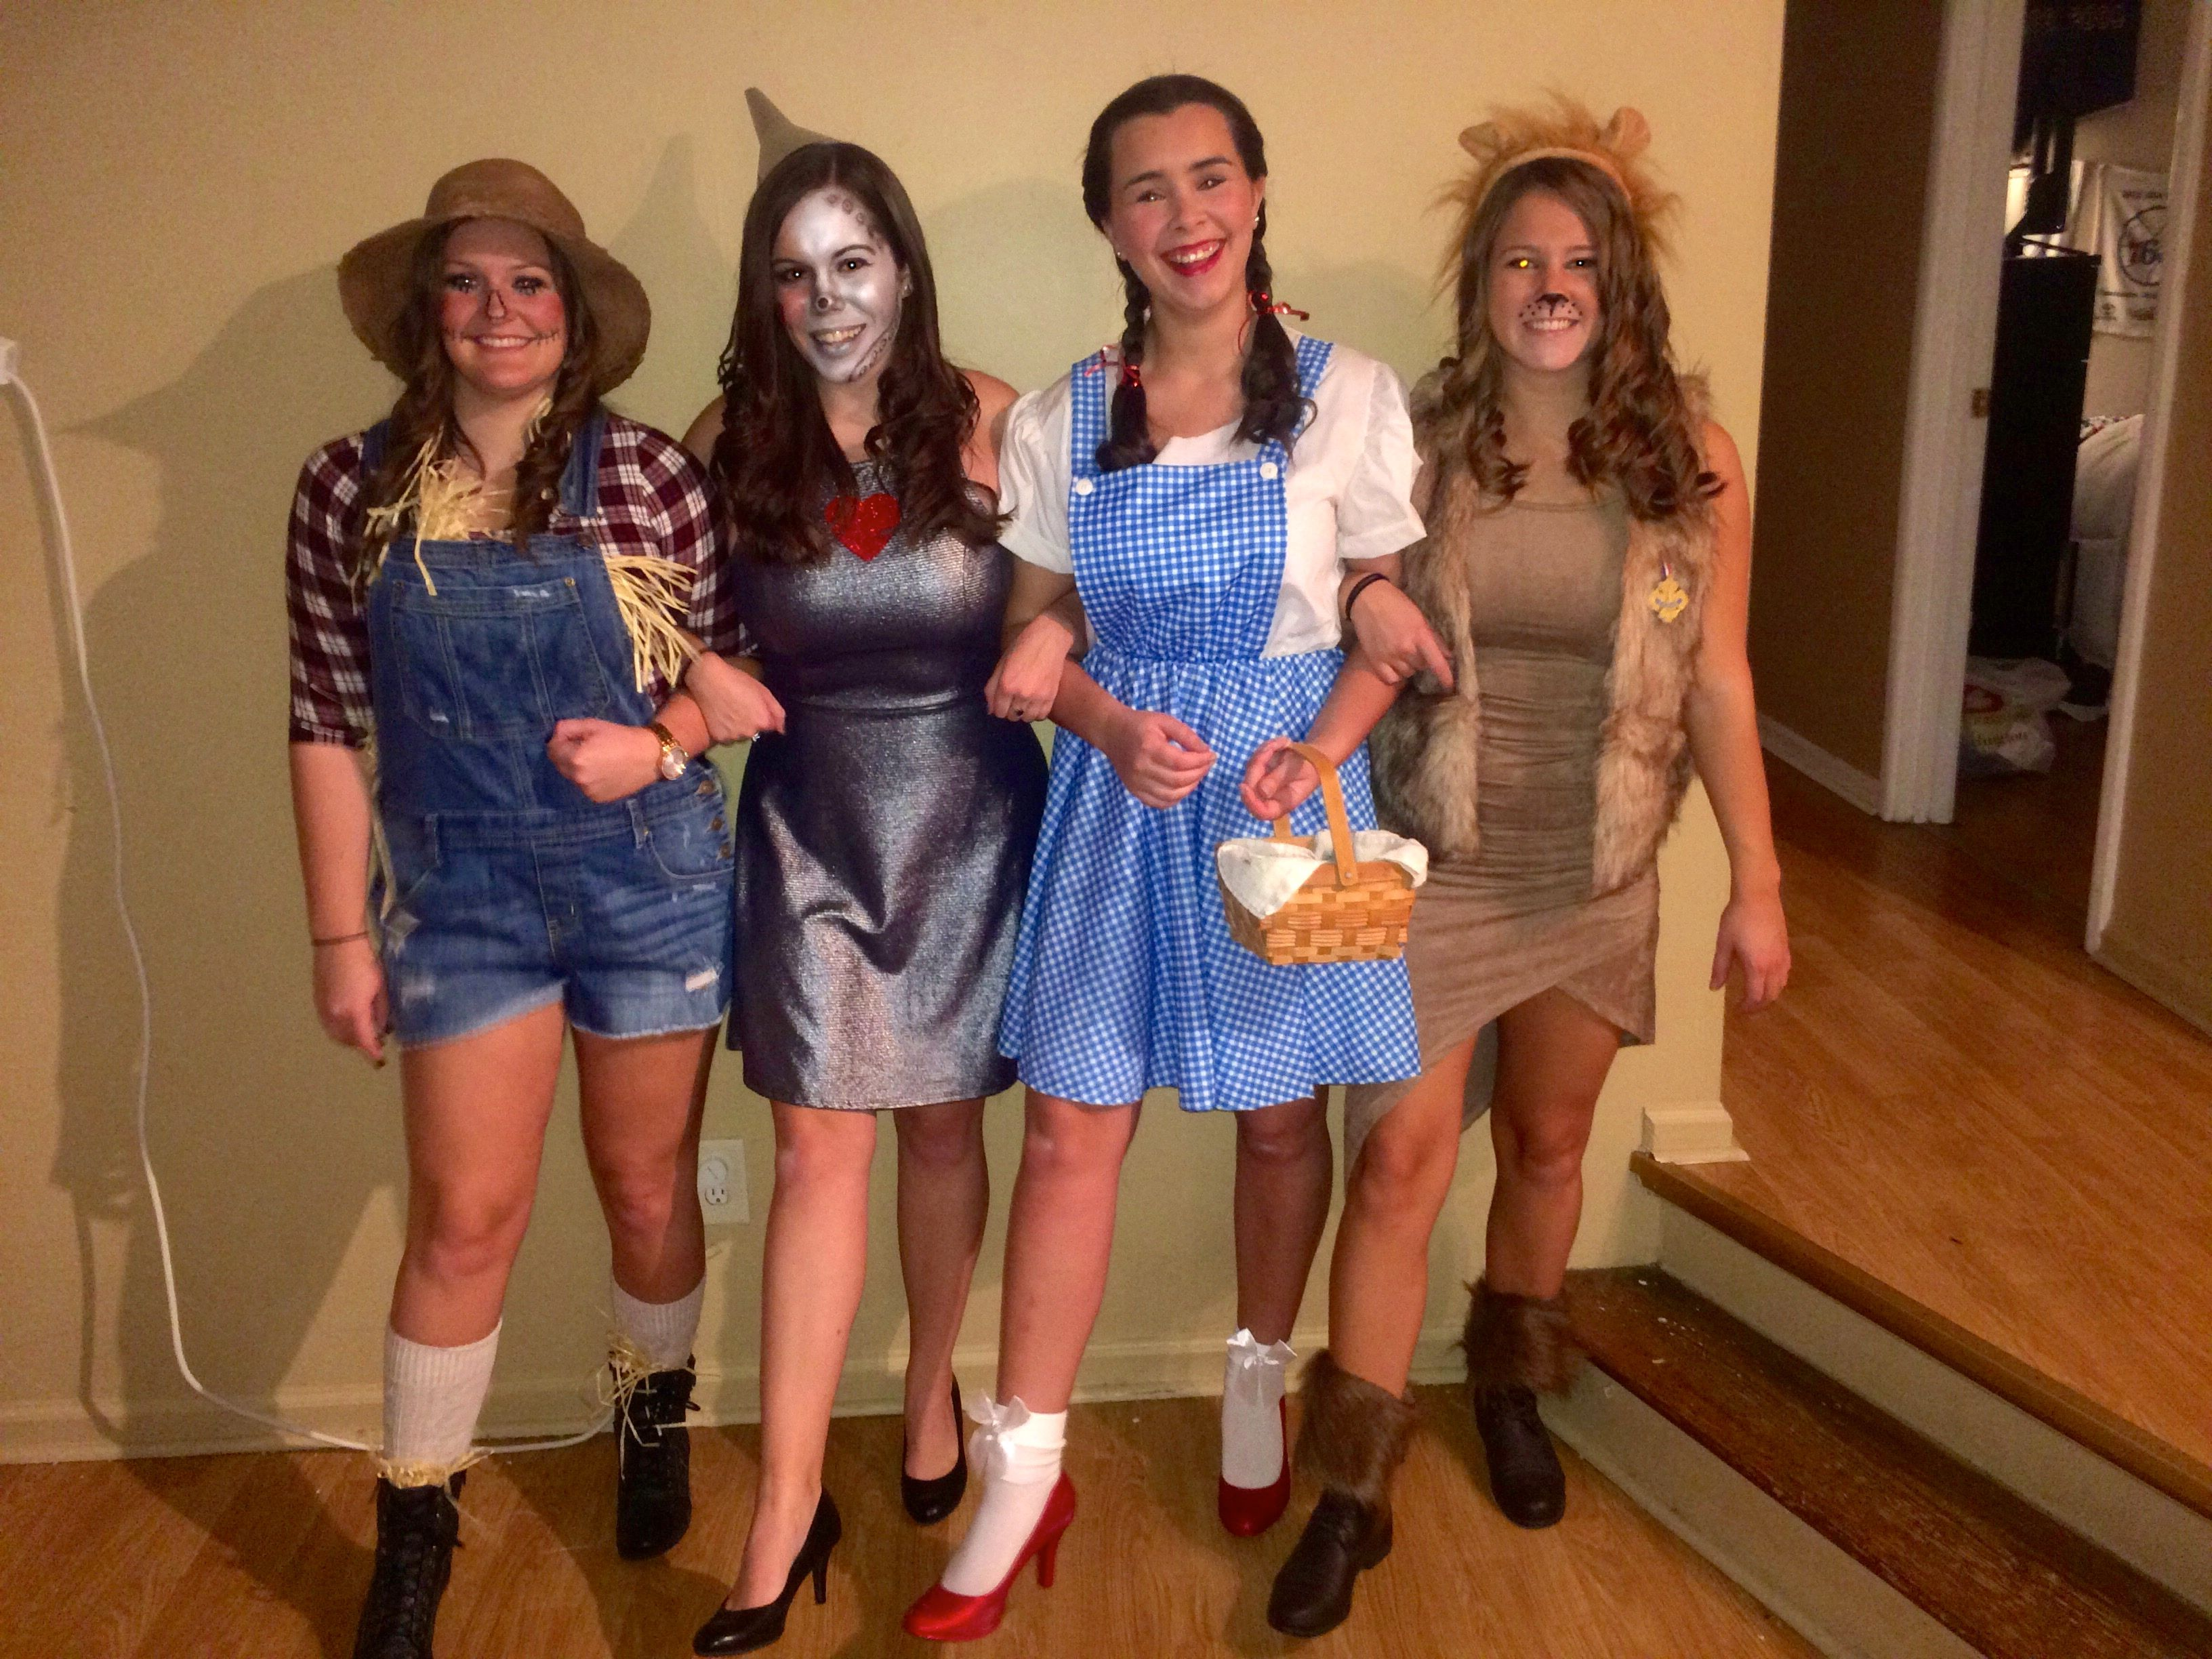 20 best Halloween costumes images on Pinterest